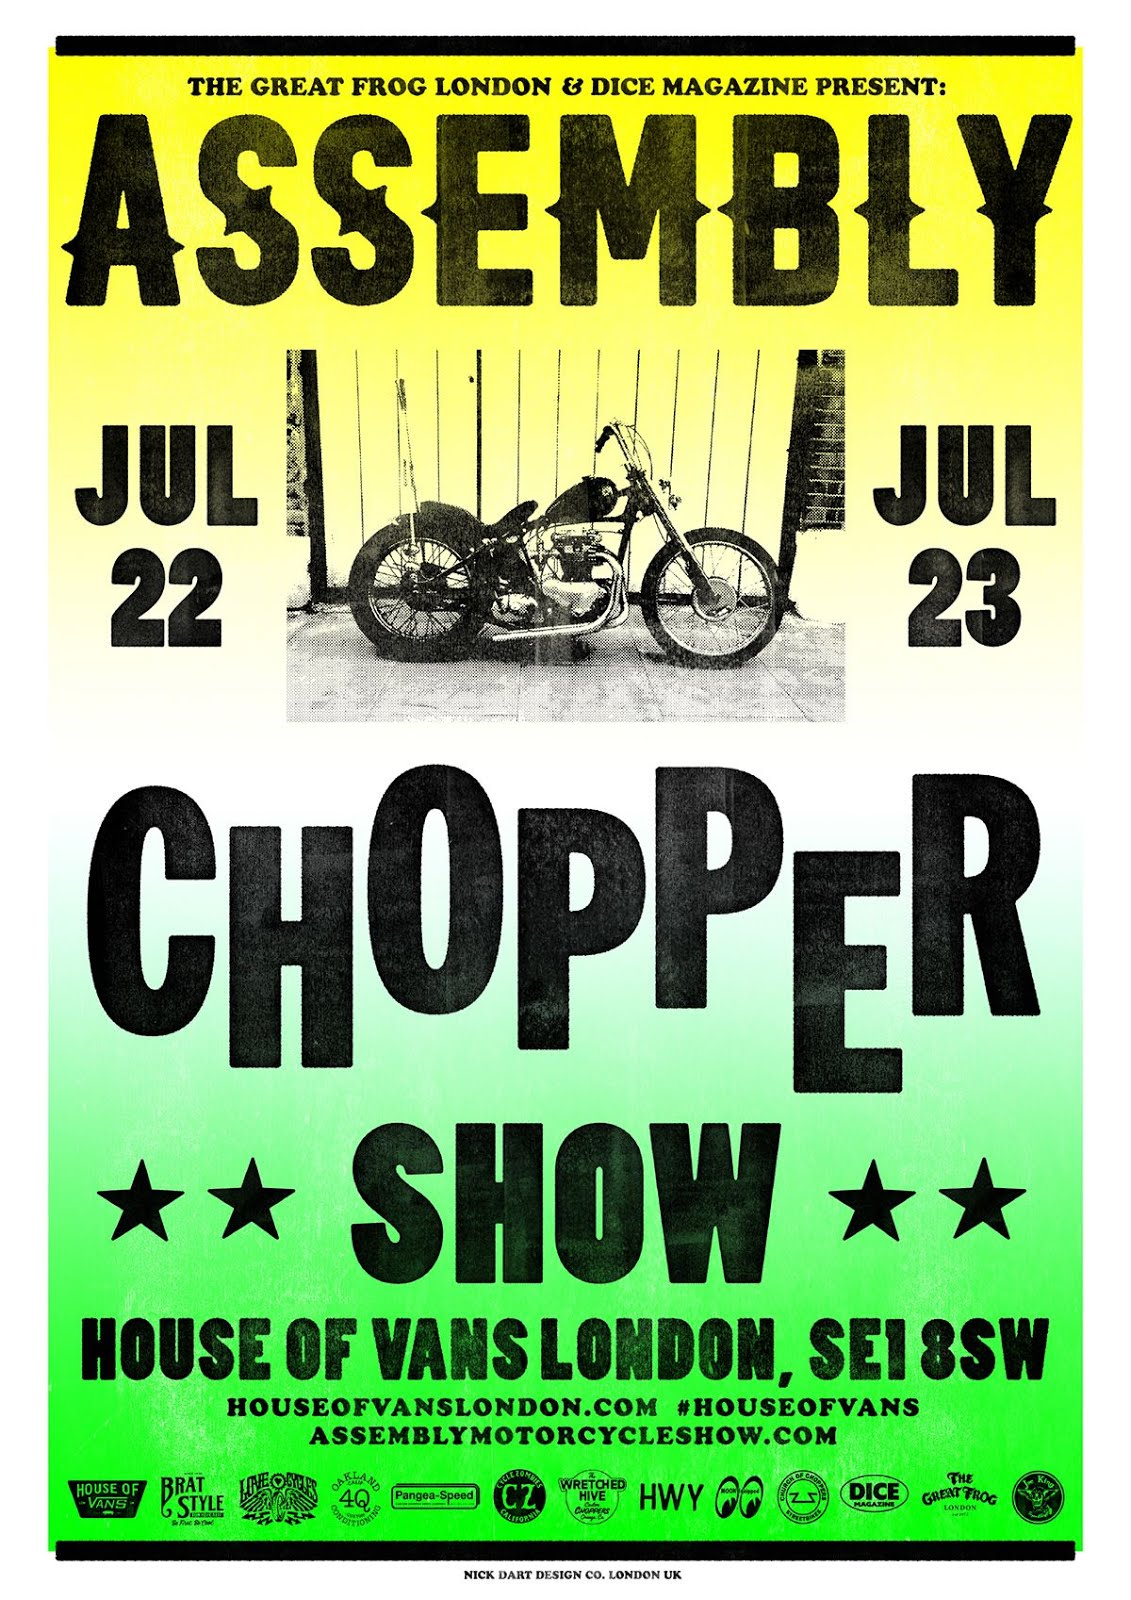 // ASSEMBLY CHOPPER SHOW